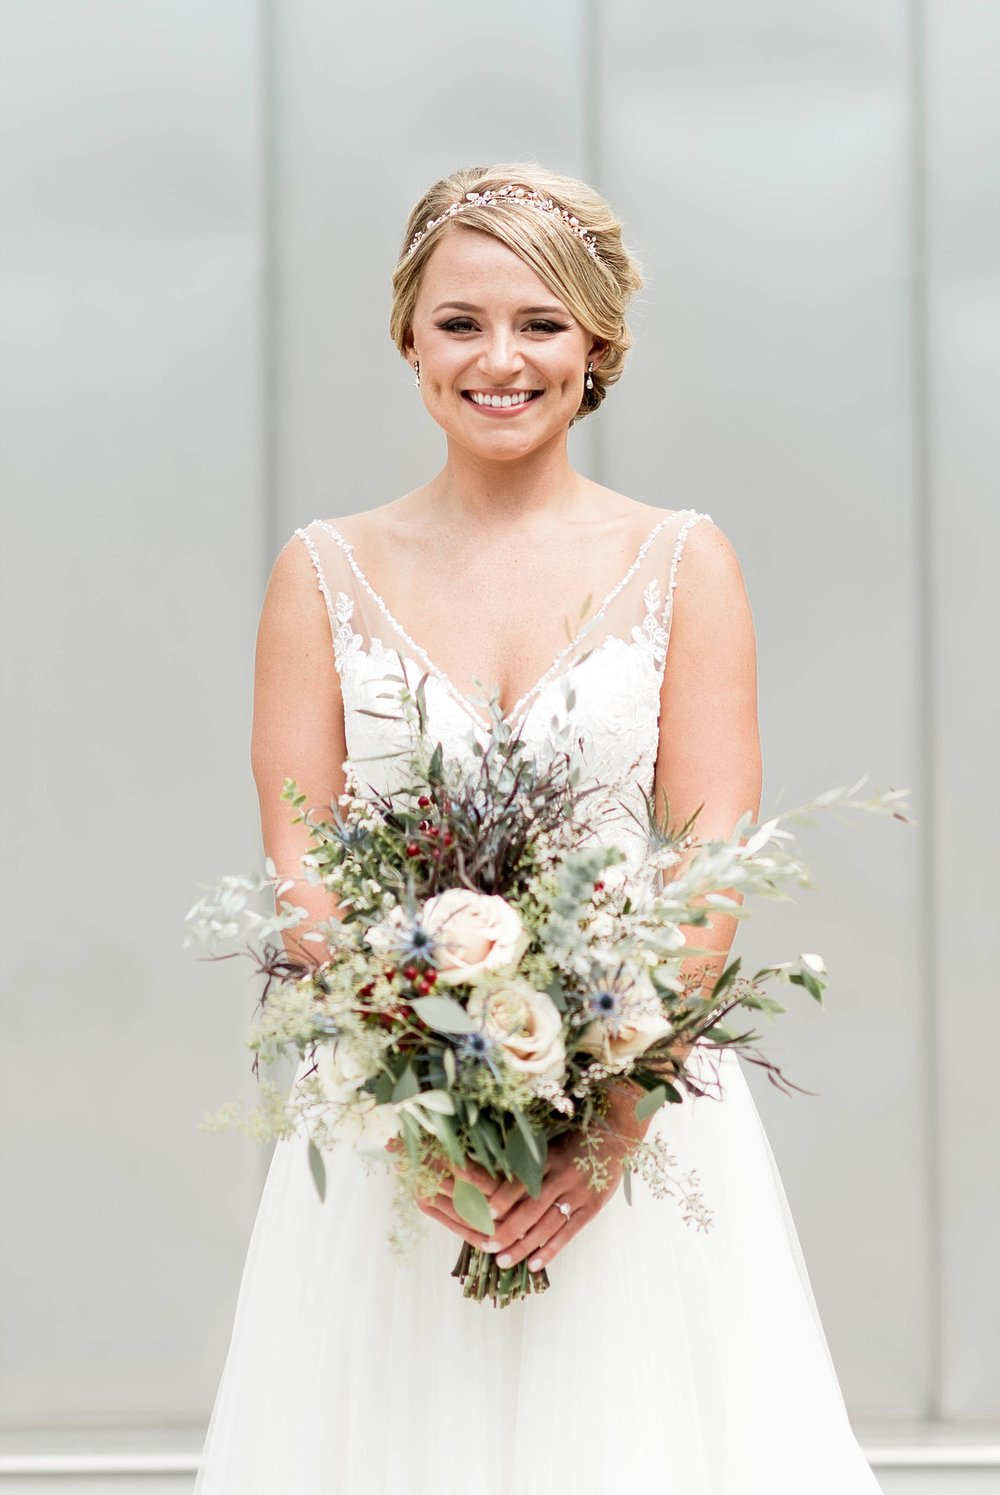 Bridal portrait wedding gown bouquet